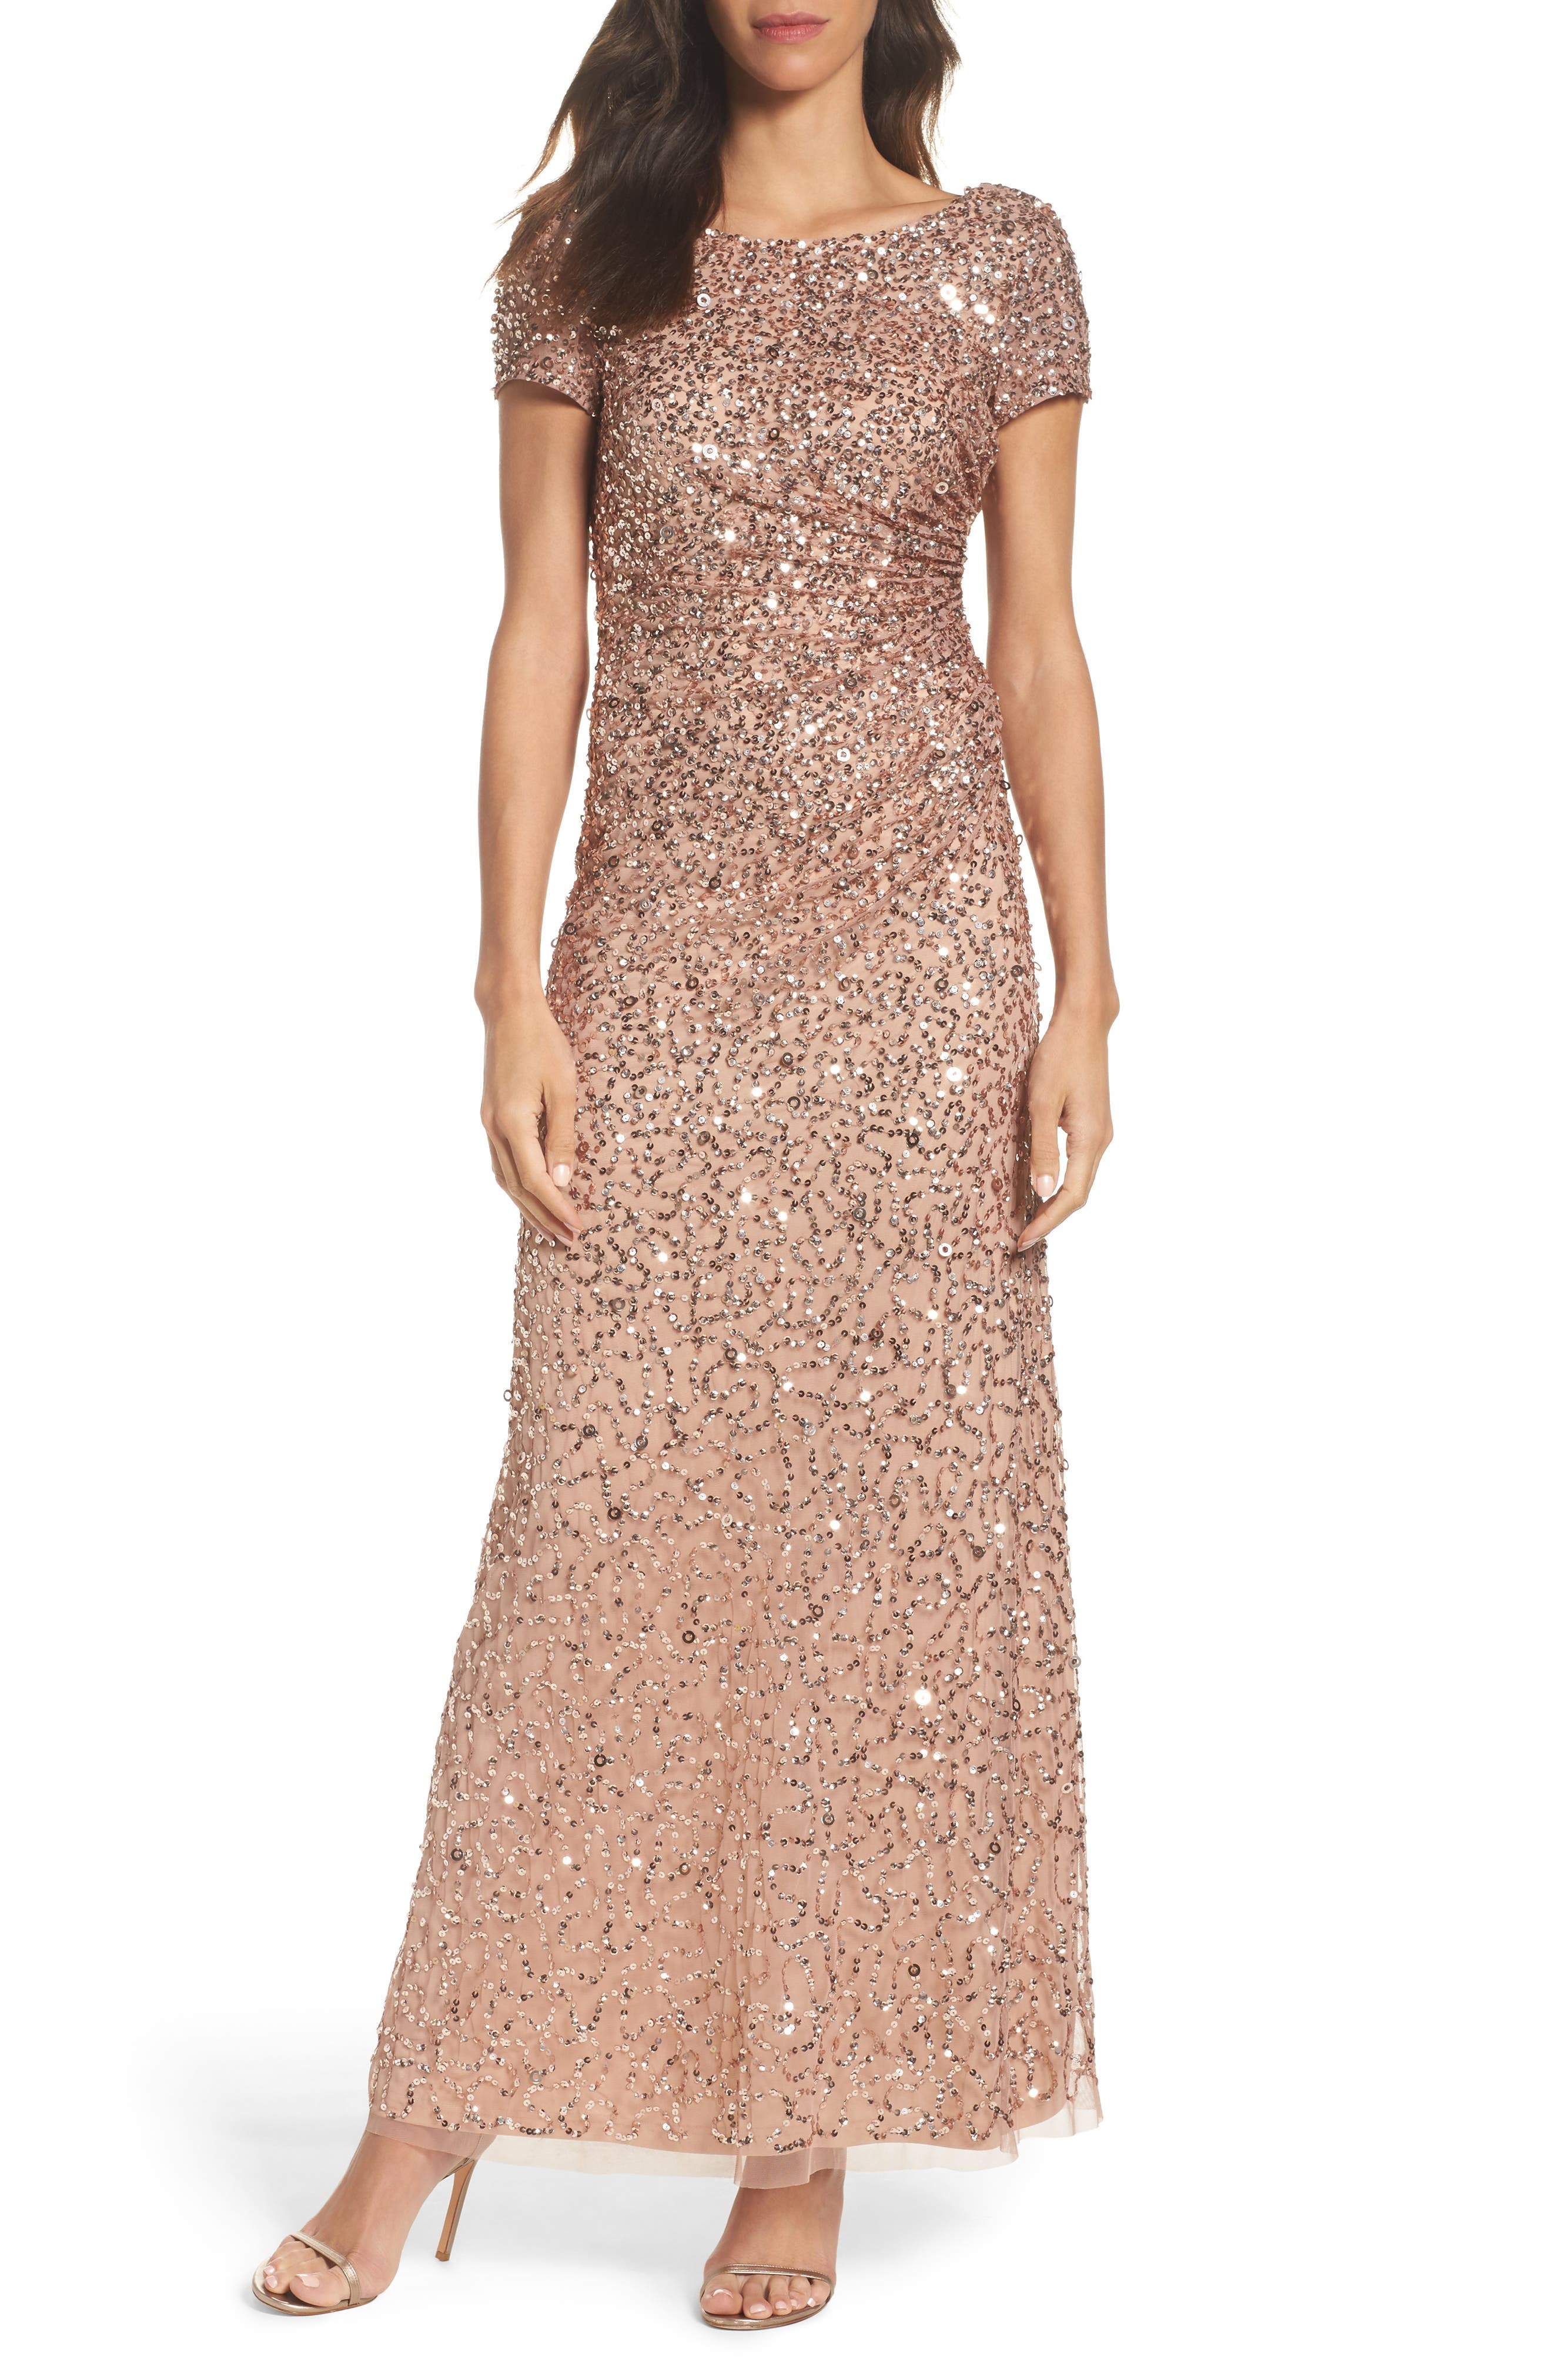 Alternate Image 1 Selected - Adrianna Papell Sequin Cowl Back Gown (Regular & Petite)